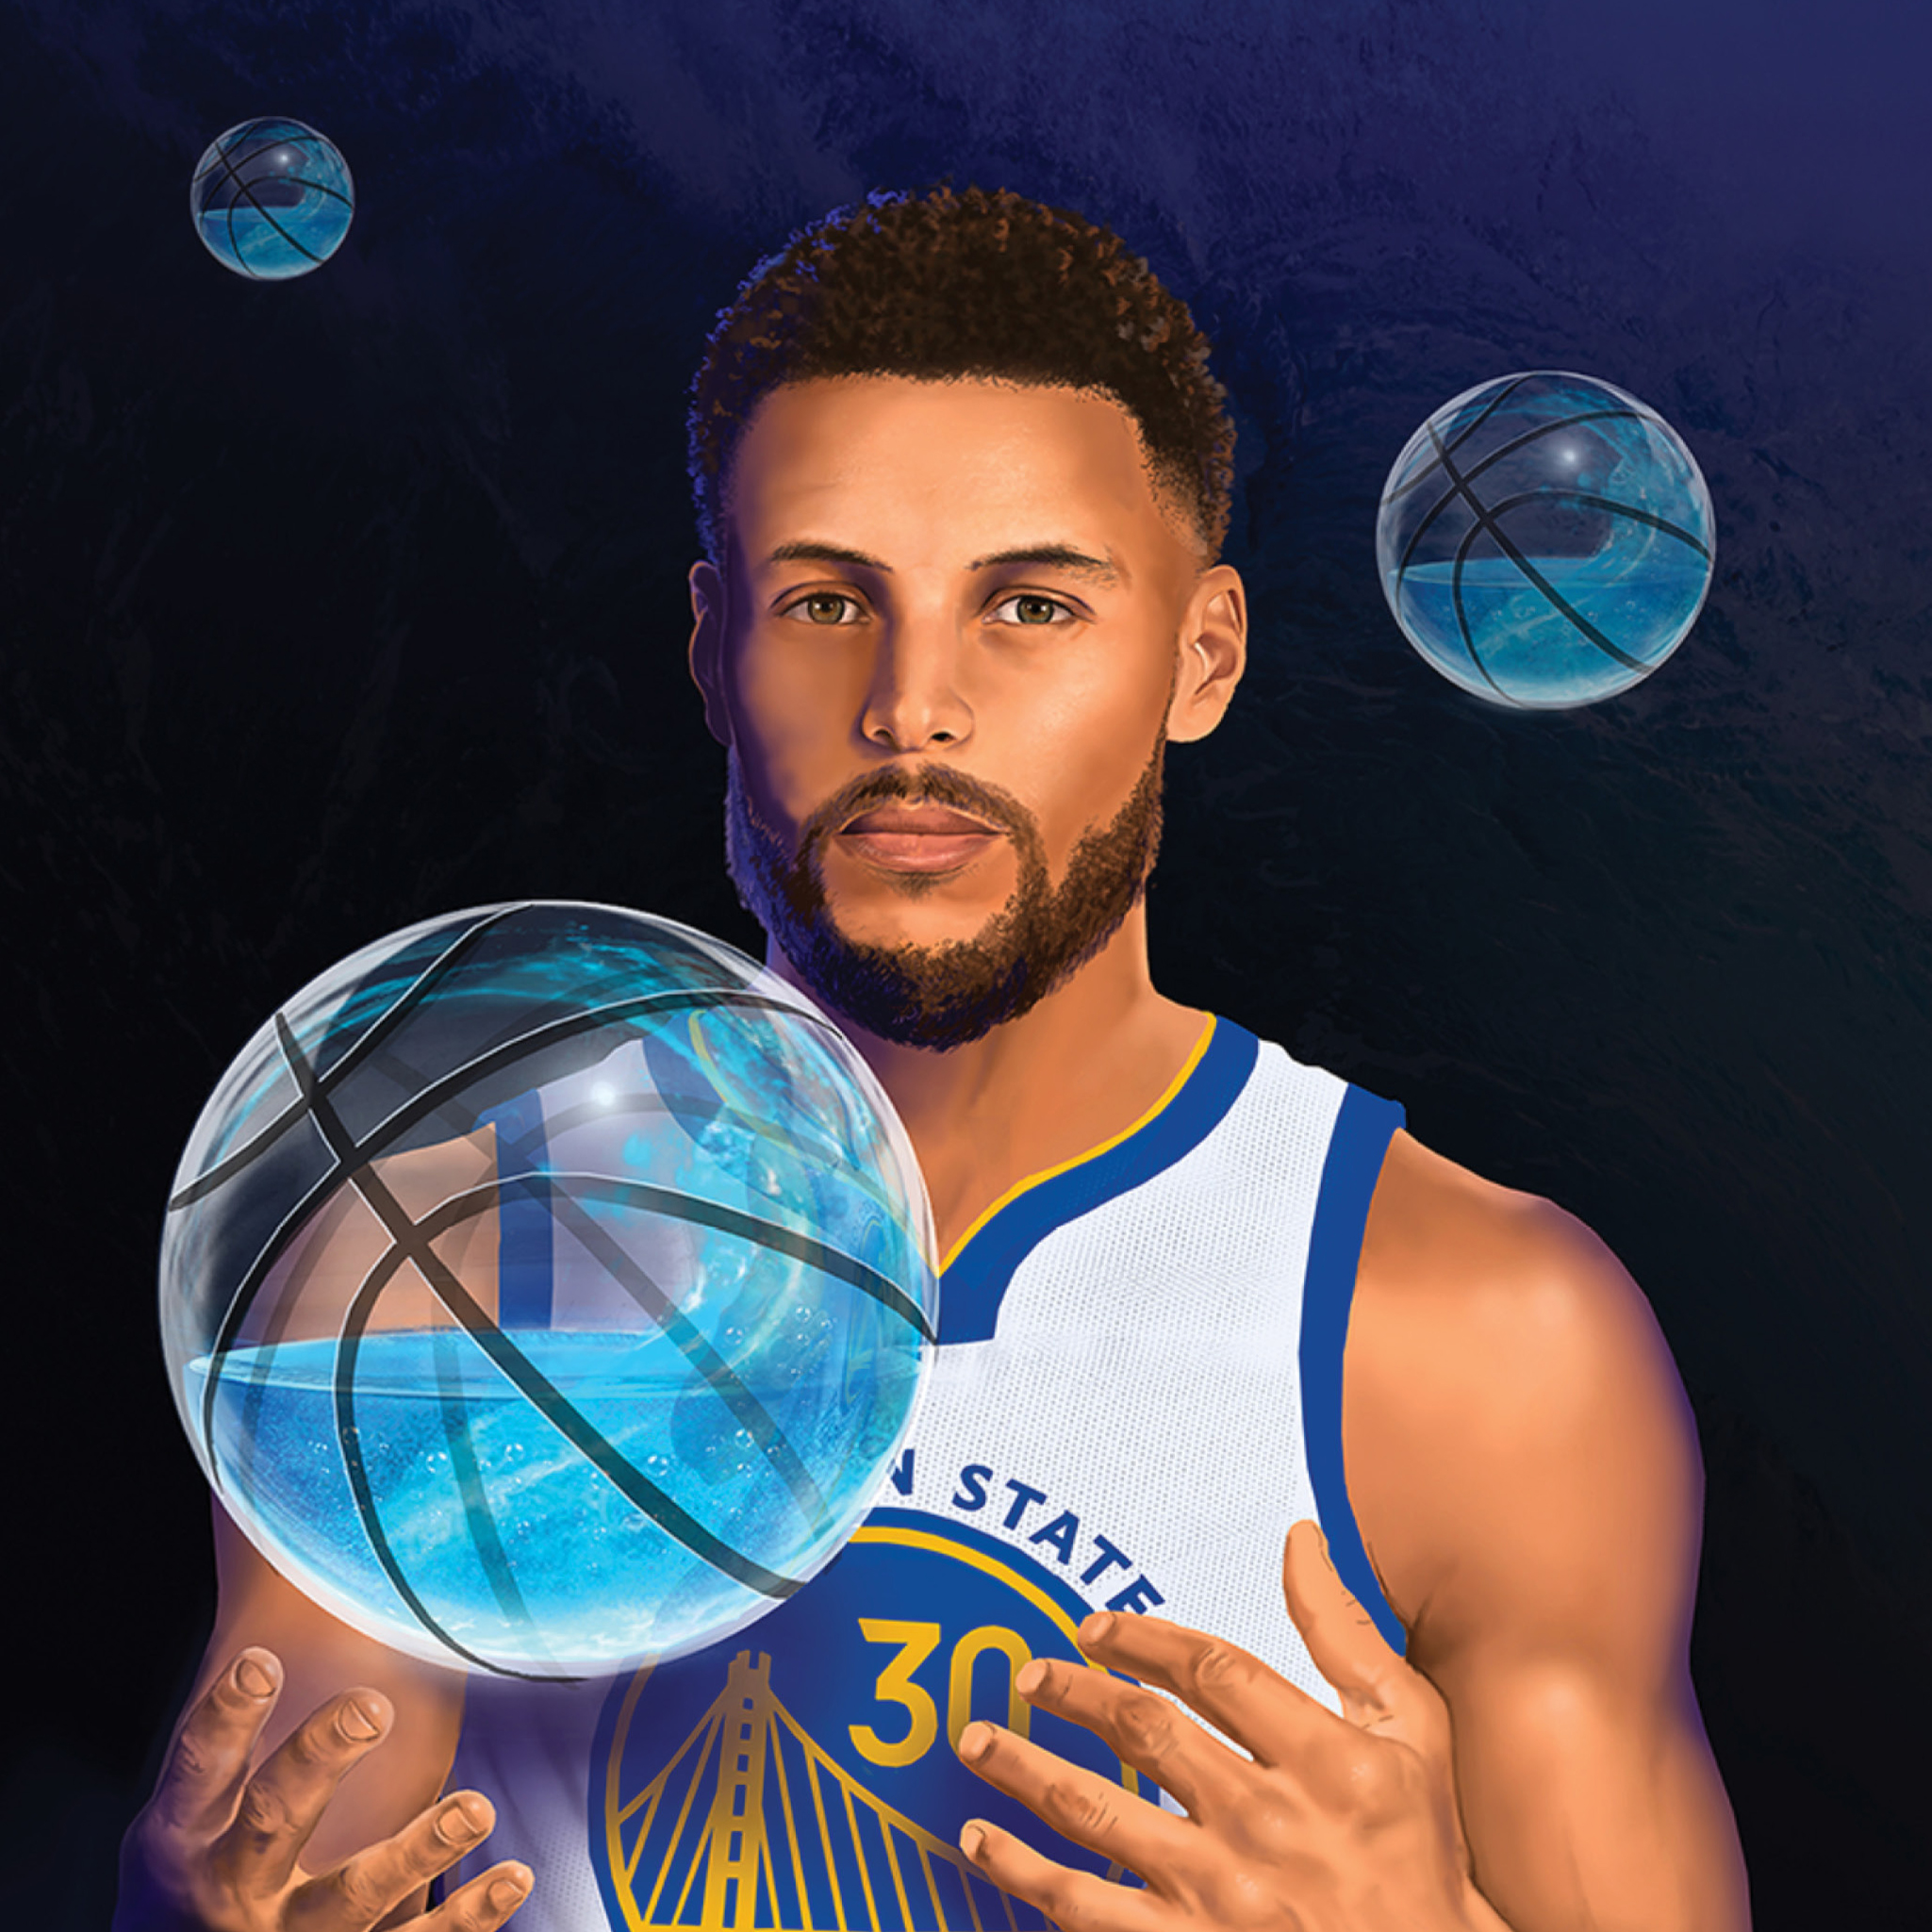 Steph Curry stands in dramatic shadow, revealing a clear basketball filled with aquamarine liquid.